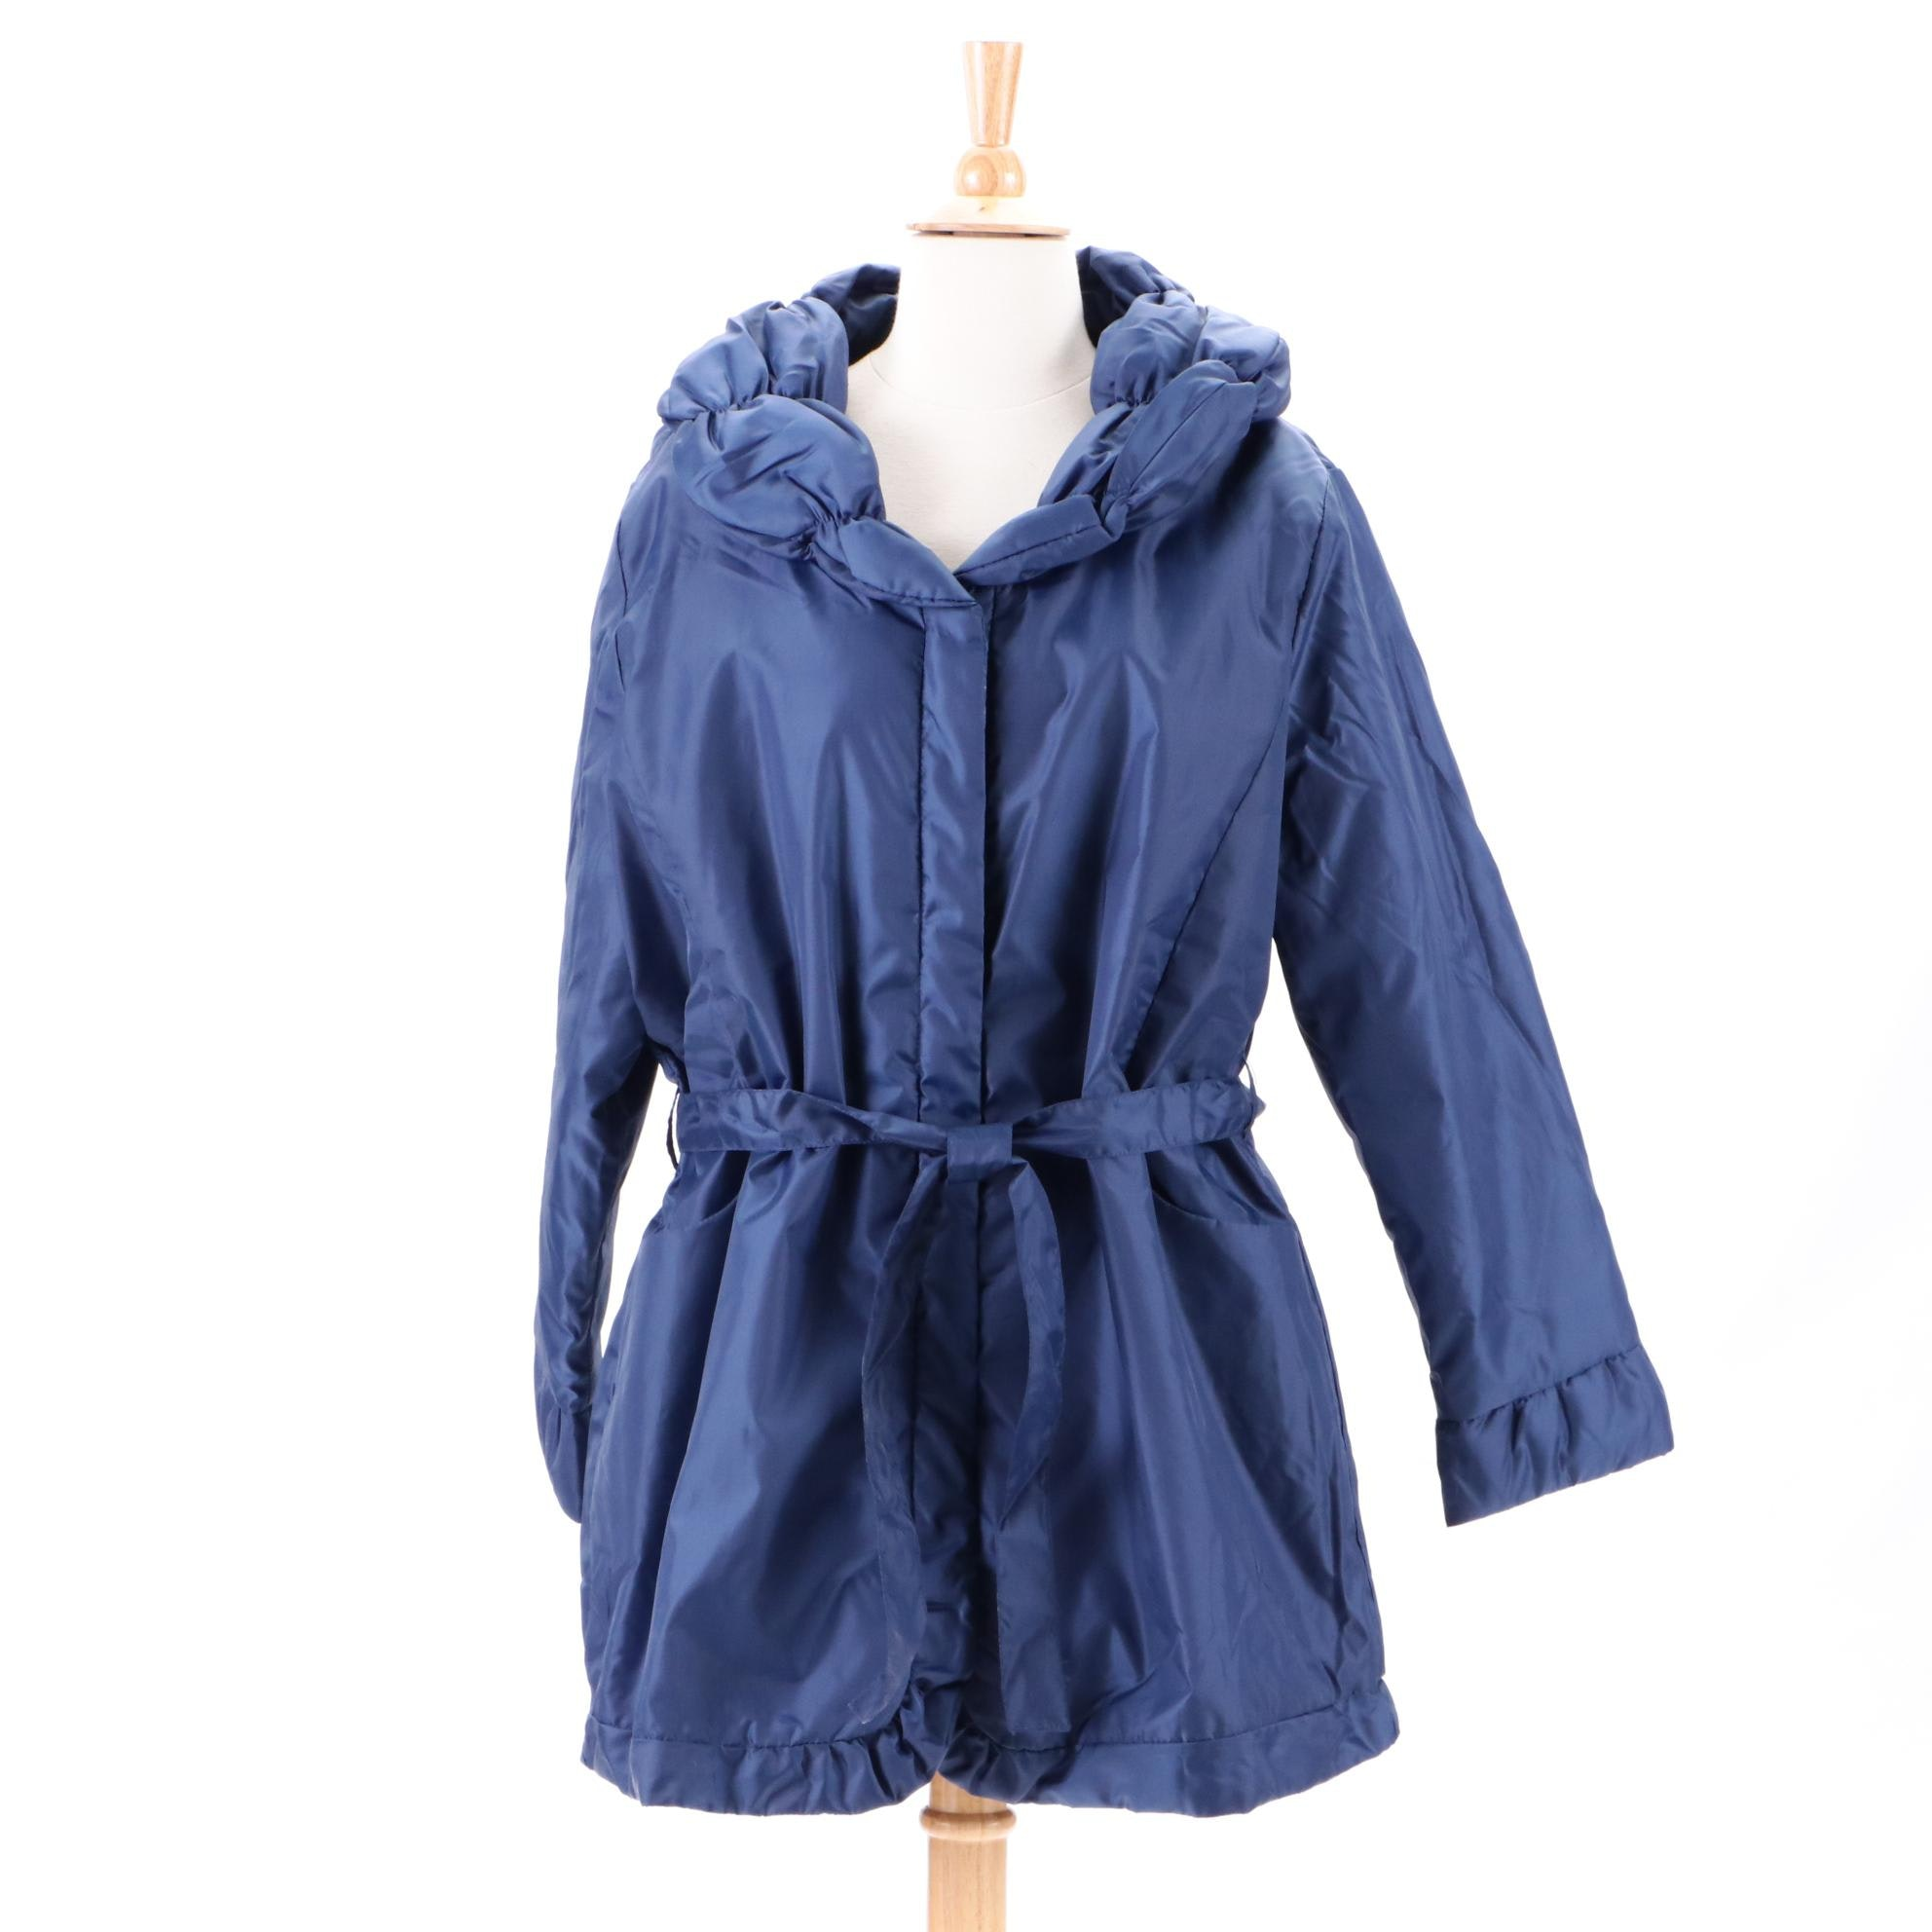 Women's Blue Button-Down Coat with Tie Belt